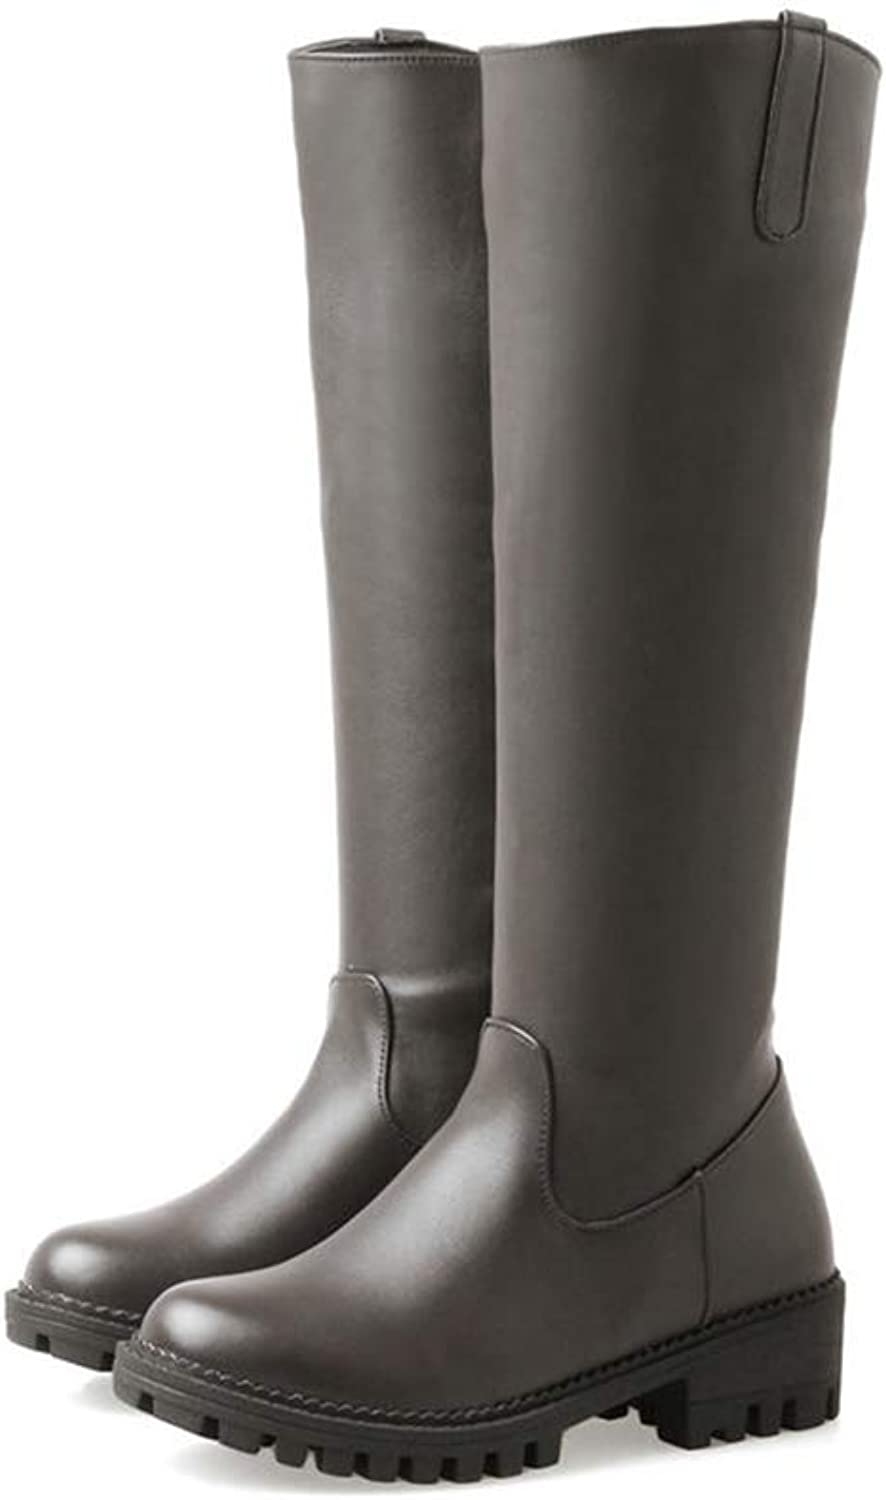 Hoxekle Women Knee-high Boots Mid Heel Sythetic Autumn Winter Round Toe Casual Black Concise Thigh Platform